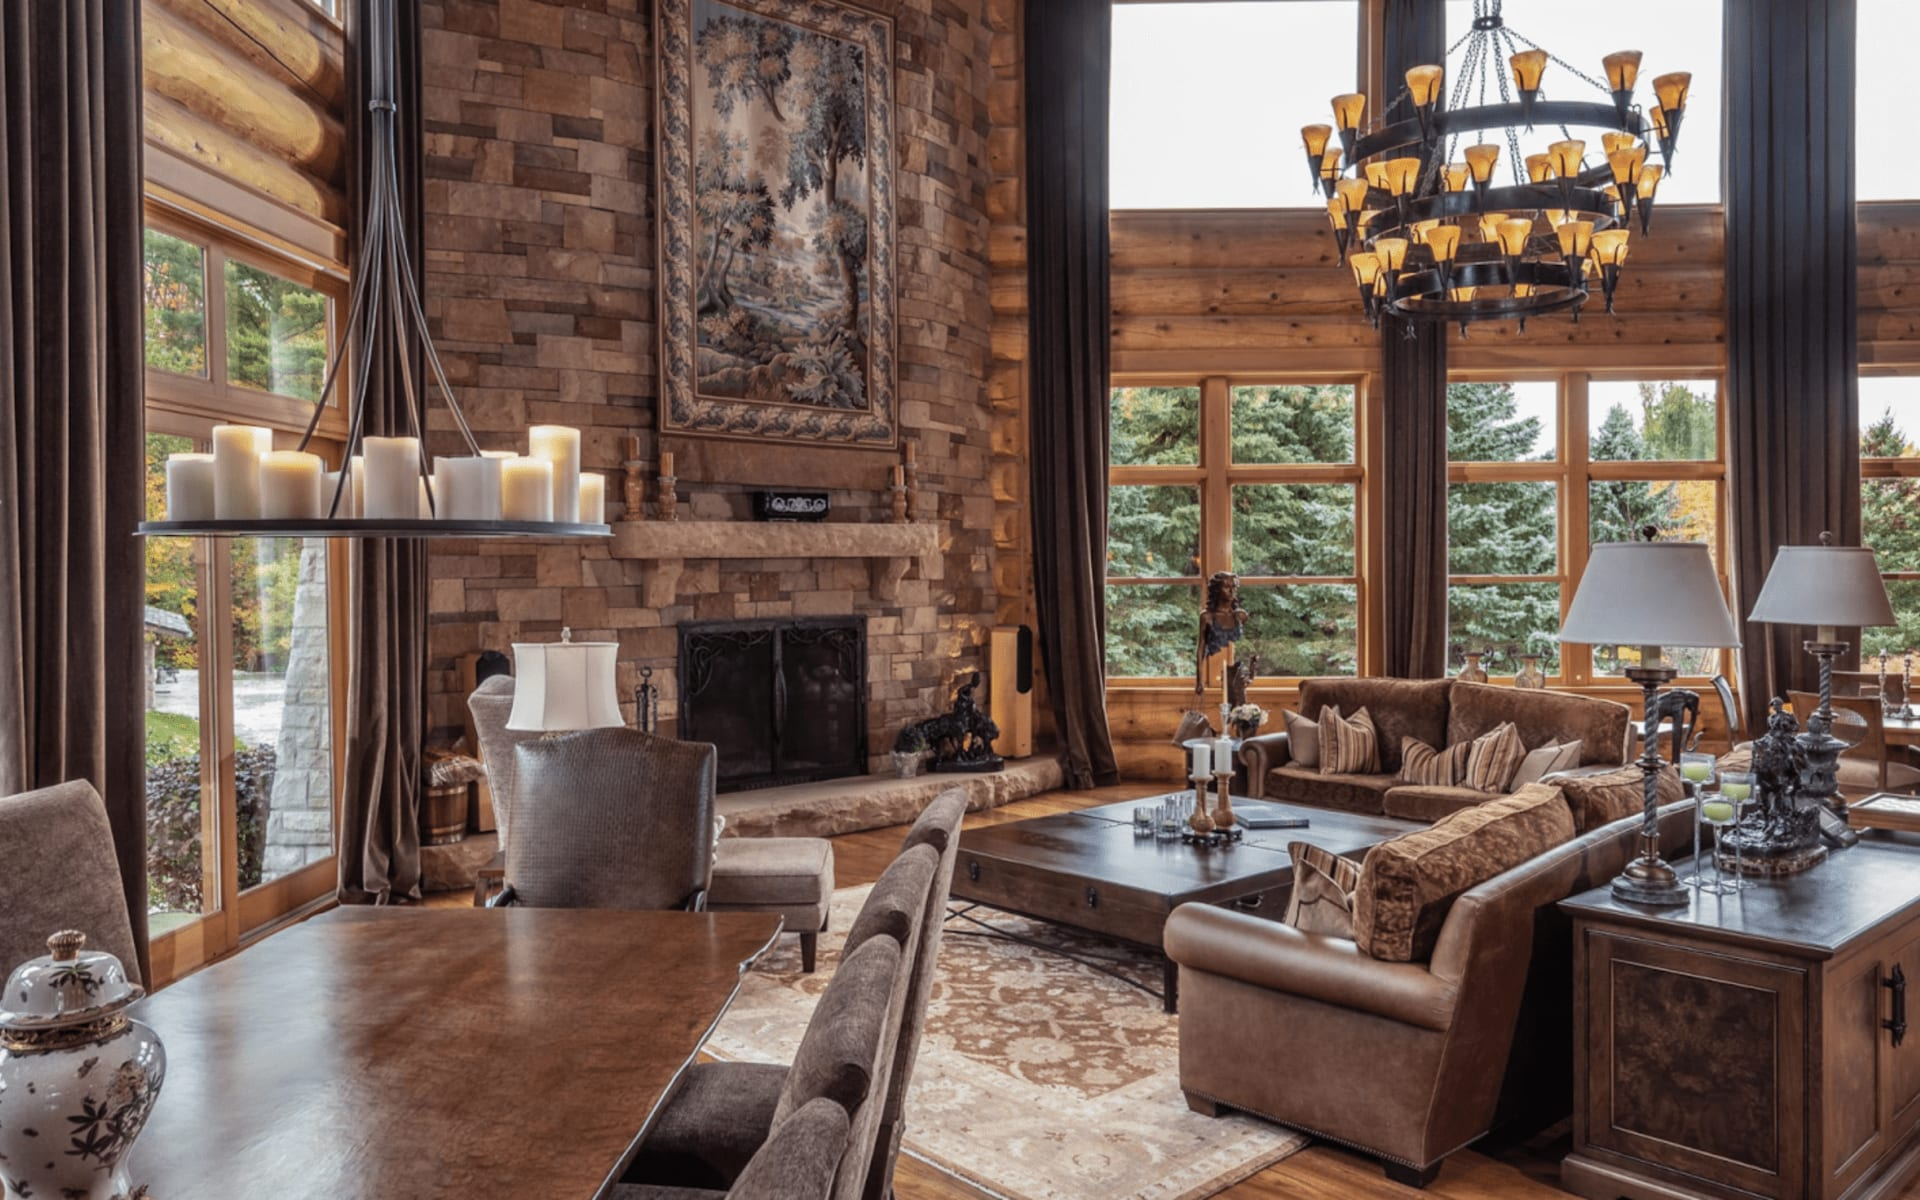 Indoor Home Upgrades to Try This Winter